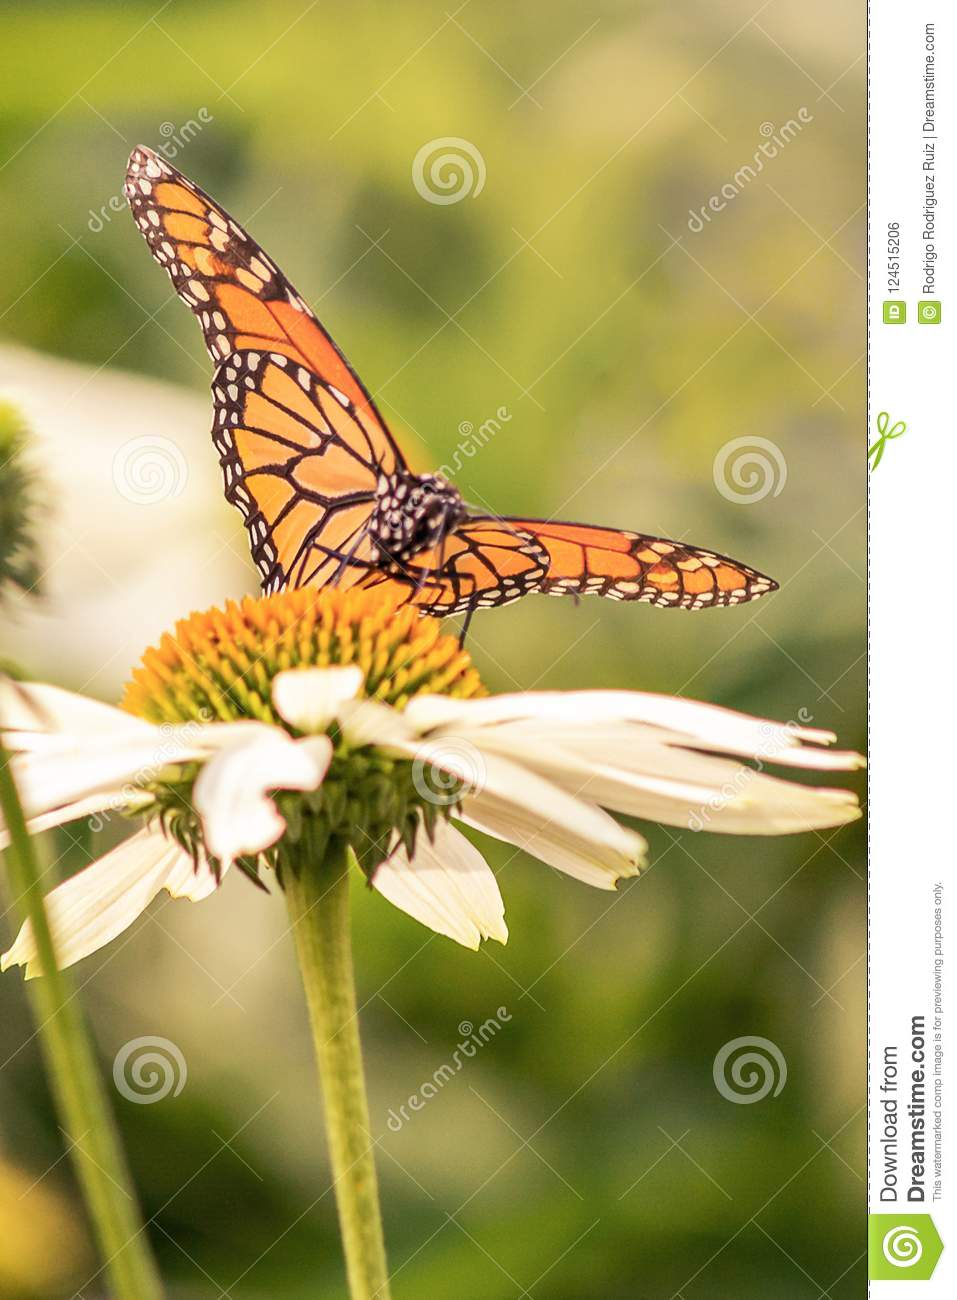 Vertical portrait of a monarch butterfly with open wings